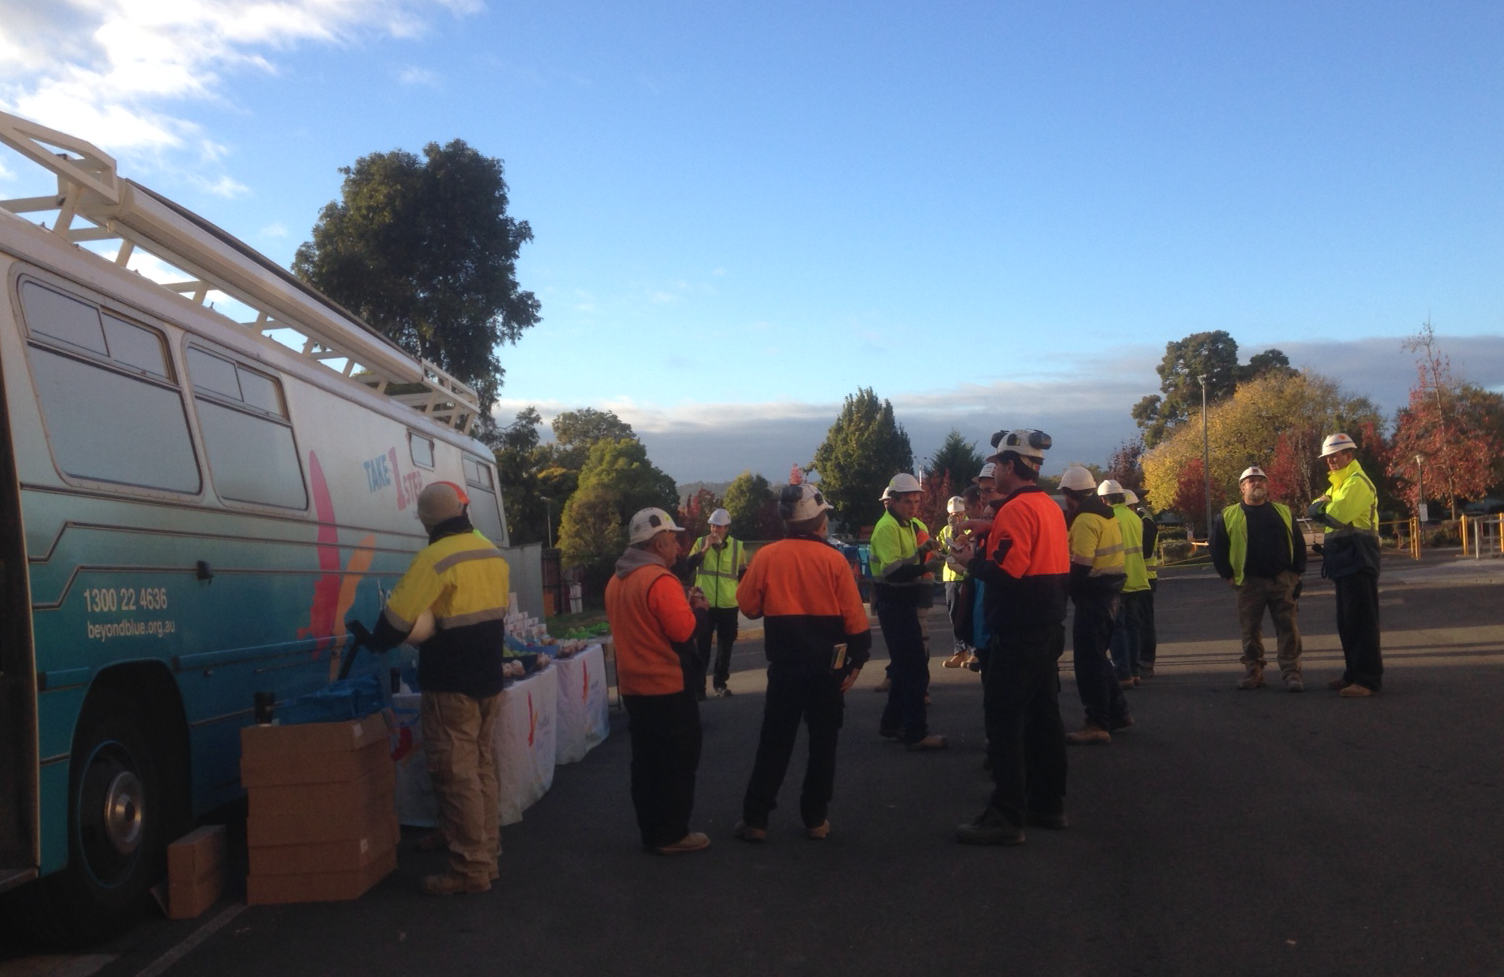 Starting the day at the Bendigo Hospital construction site.